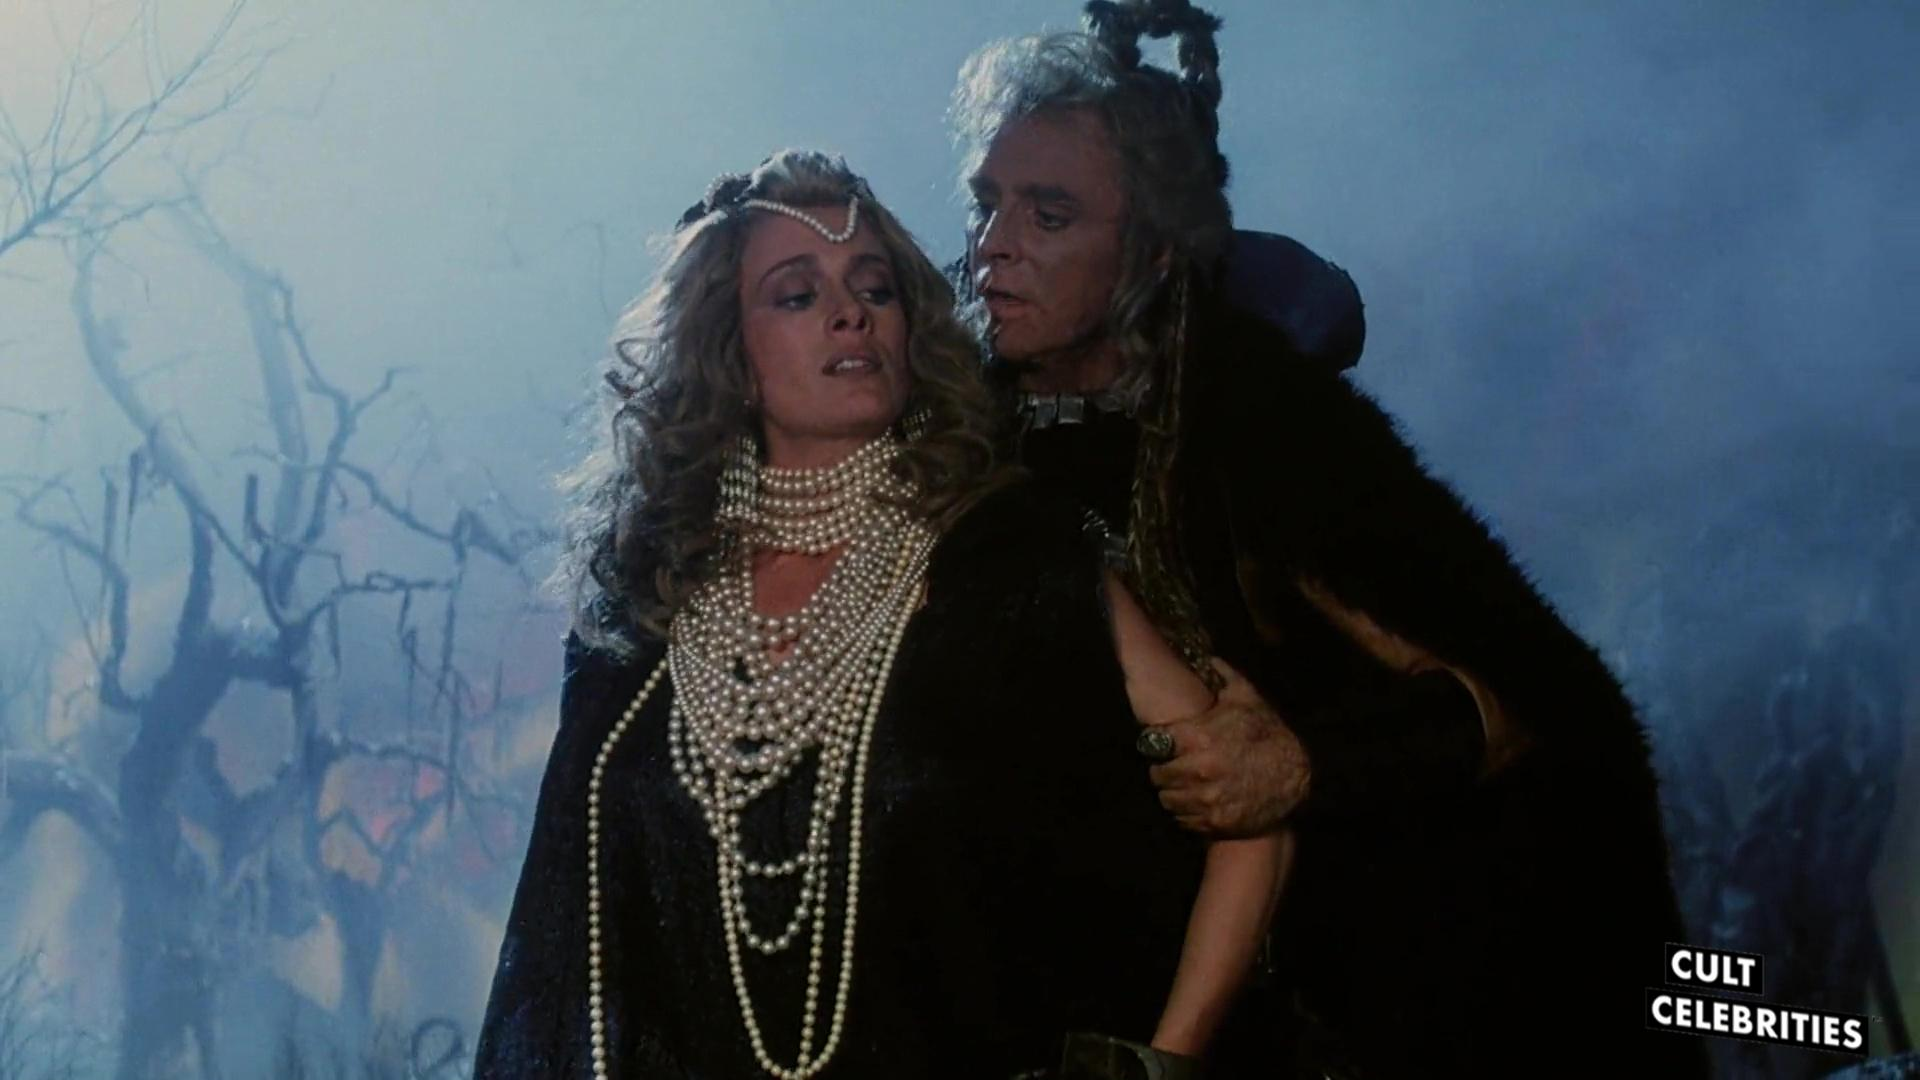 Richard Lynch and Virginia Bryant in the 1987 sword-and-sorcery film The Barbarians.